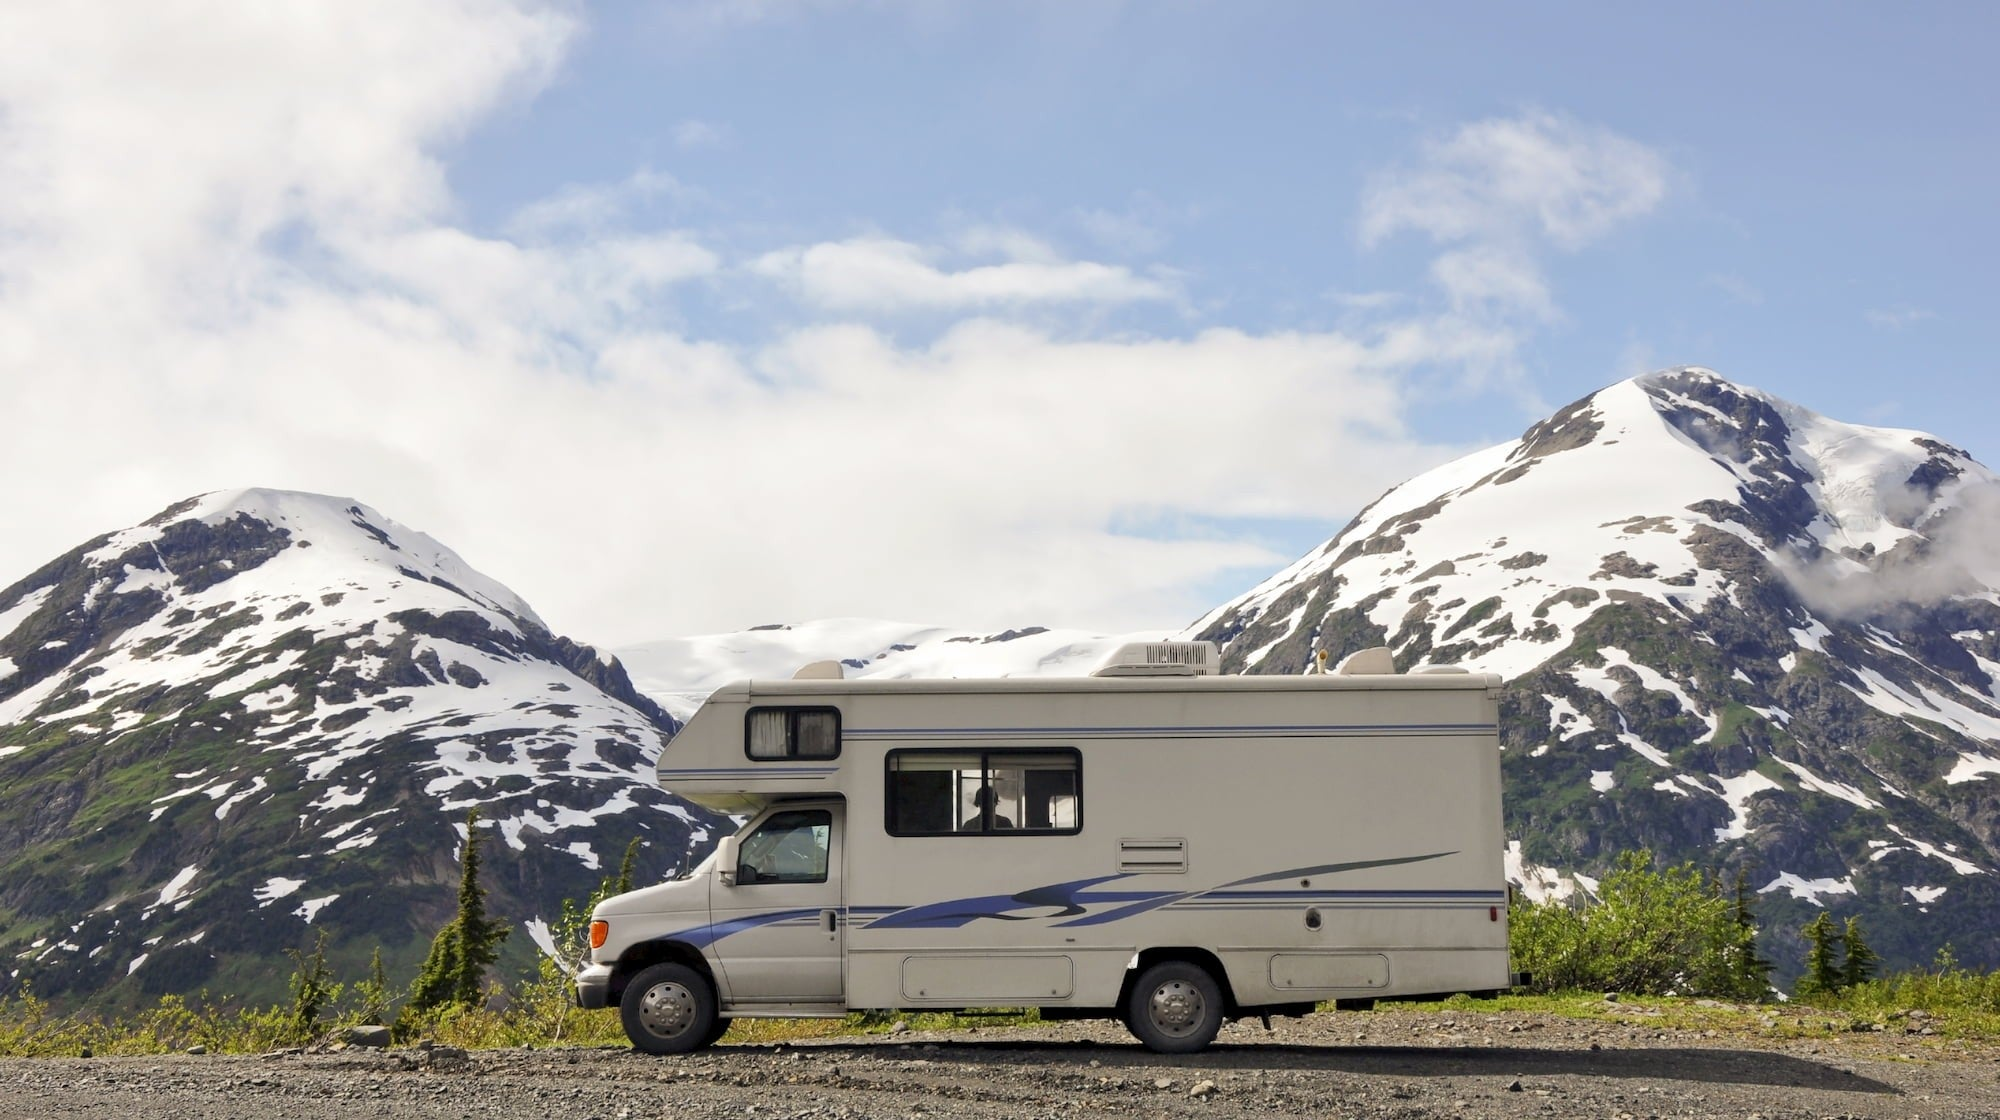 How To Go Rv Camping In The Winter According To Rv Experts